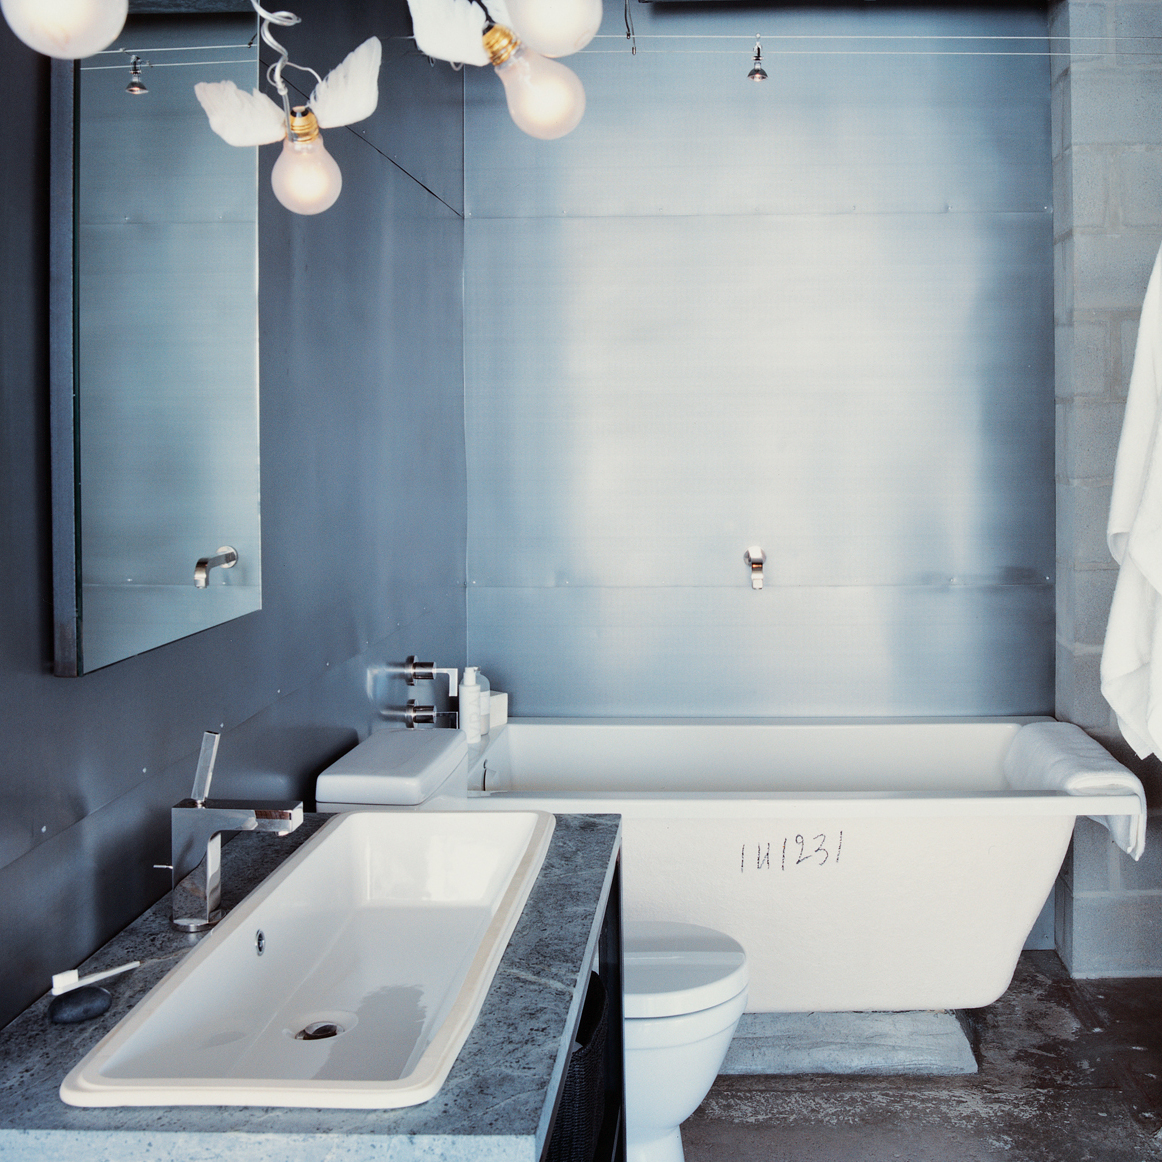 Hill house industrial bathroom in Houston